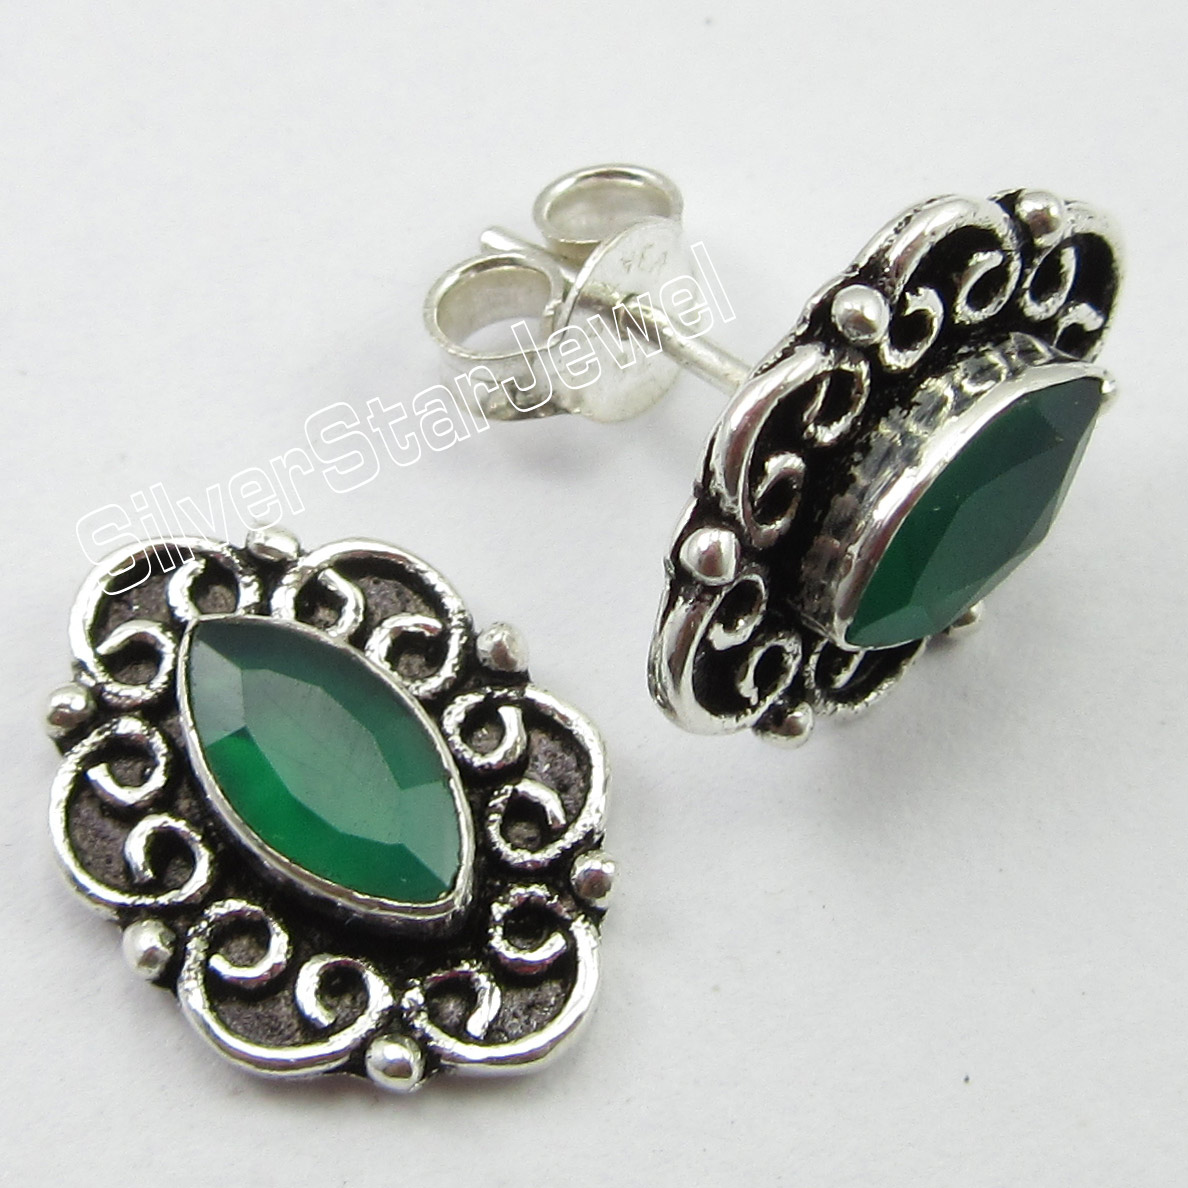 Chanti International Pure Silver STAMPED Dazzling GREEN ONYX ANTIQUE STYLE POST Earrings 1 5 CM